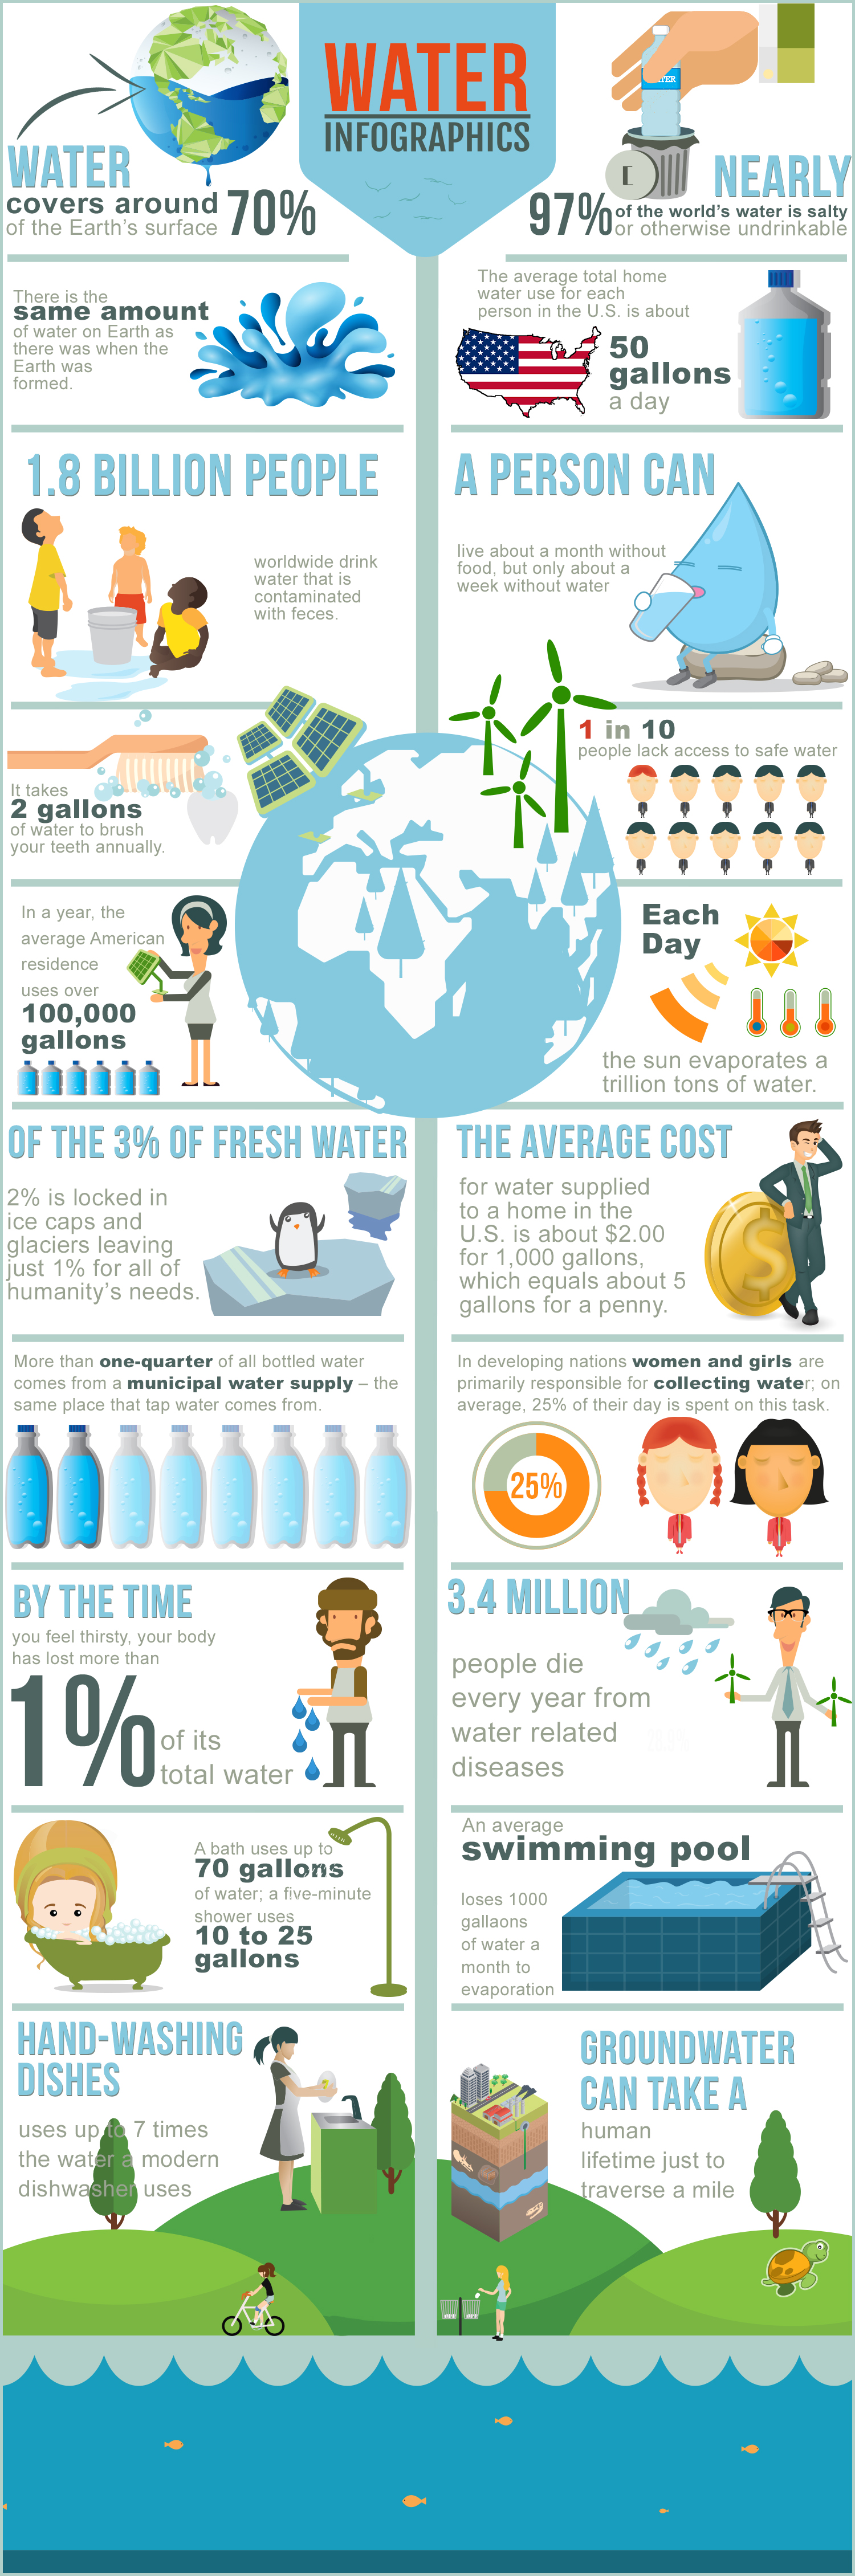 20 Water Facts infographic